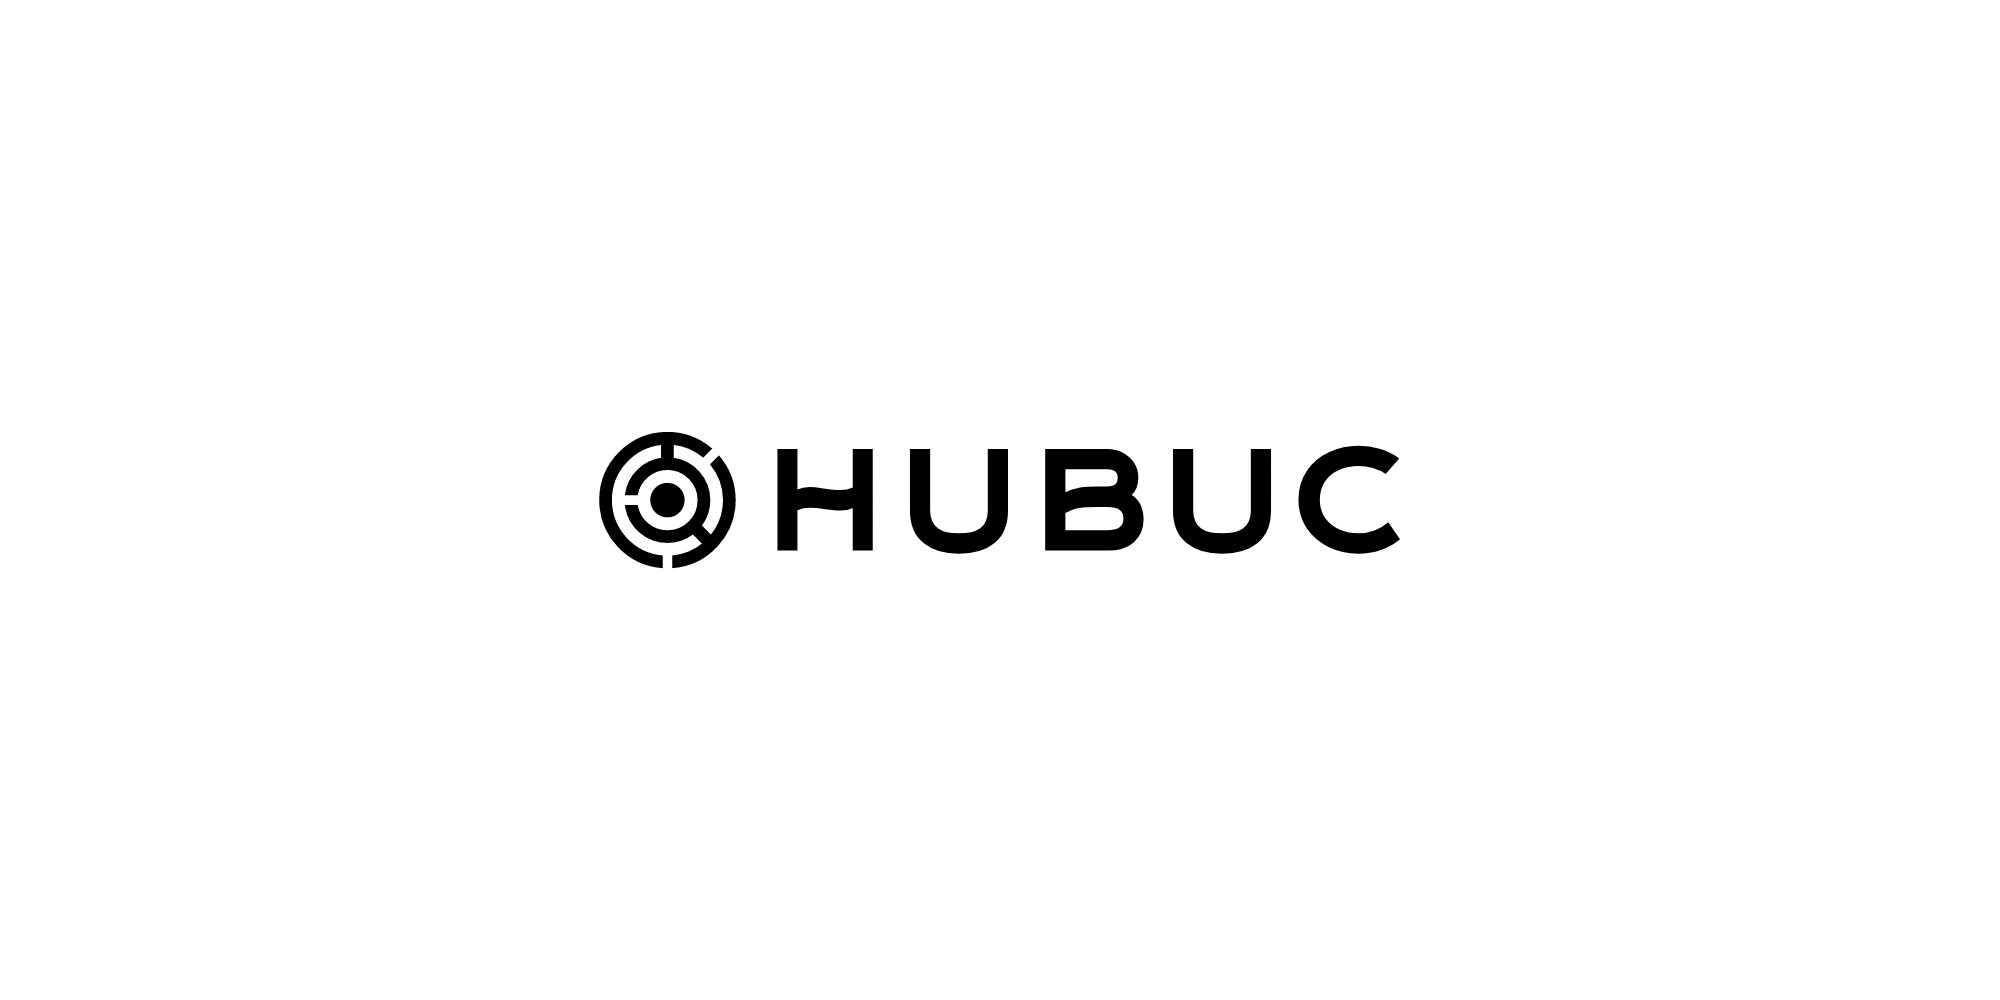 HUBUC Teams Up With IDEMIA to Provide Dynamic CVV MOTION CODE™ Card to Help Fight Fraud